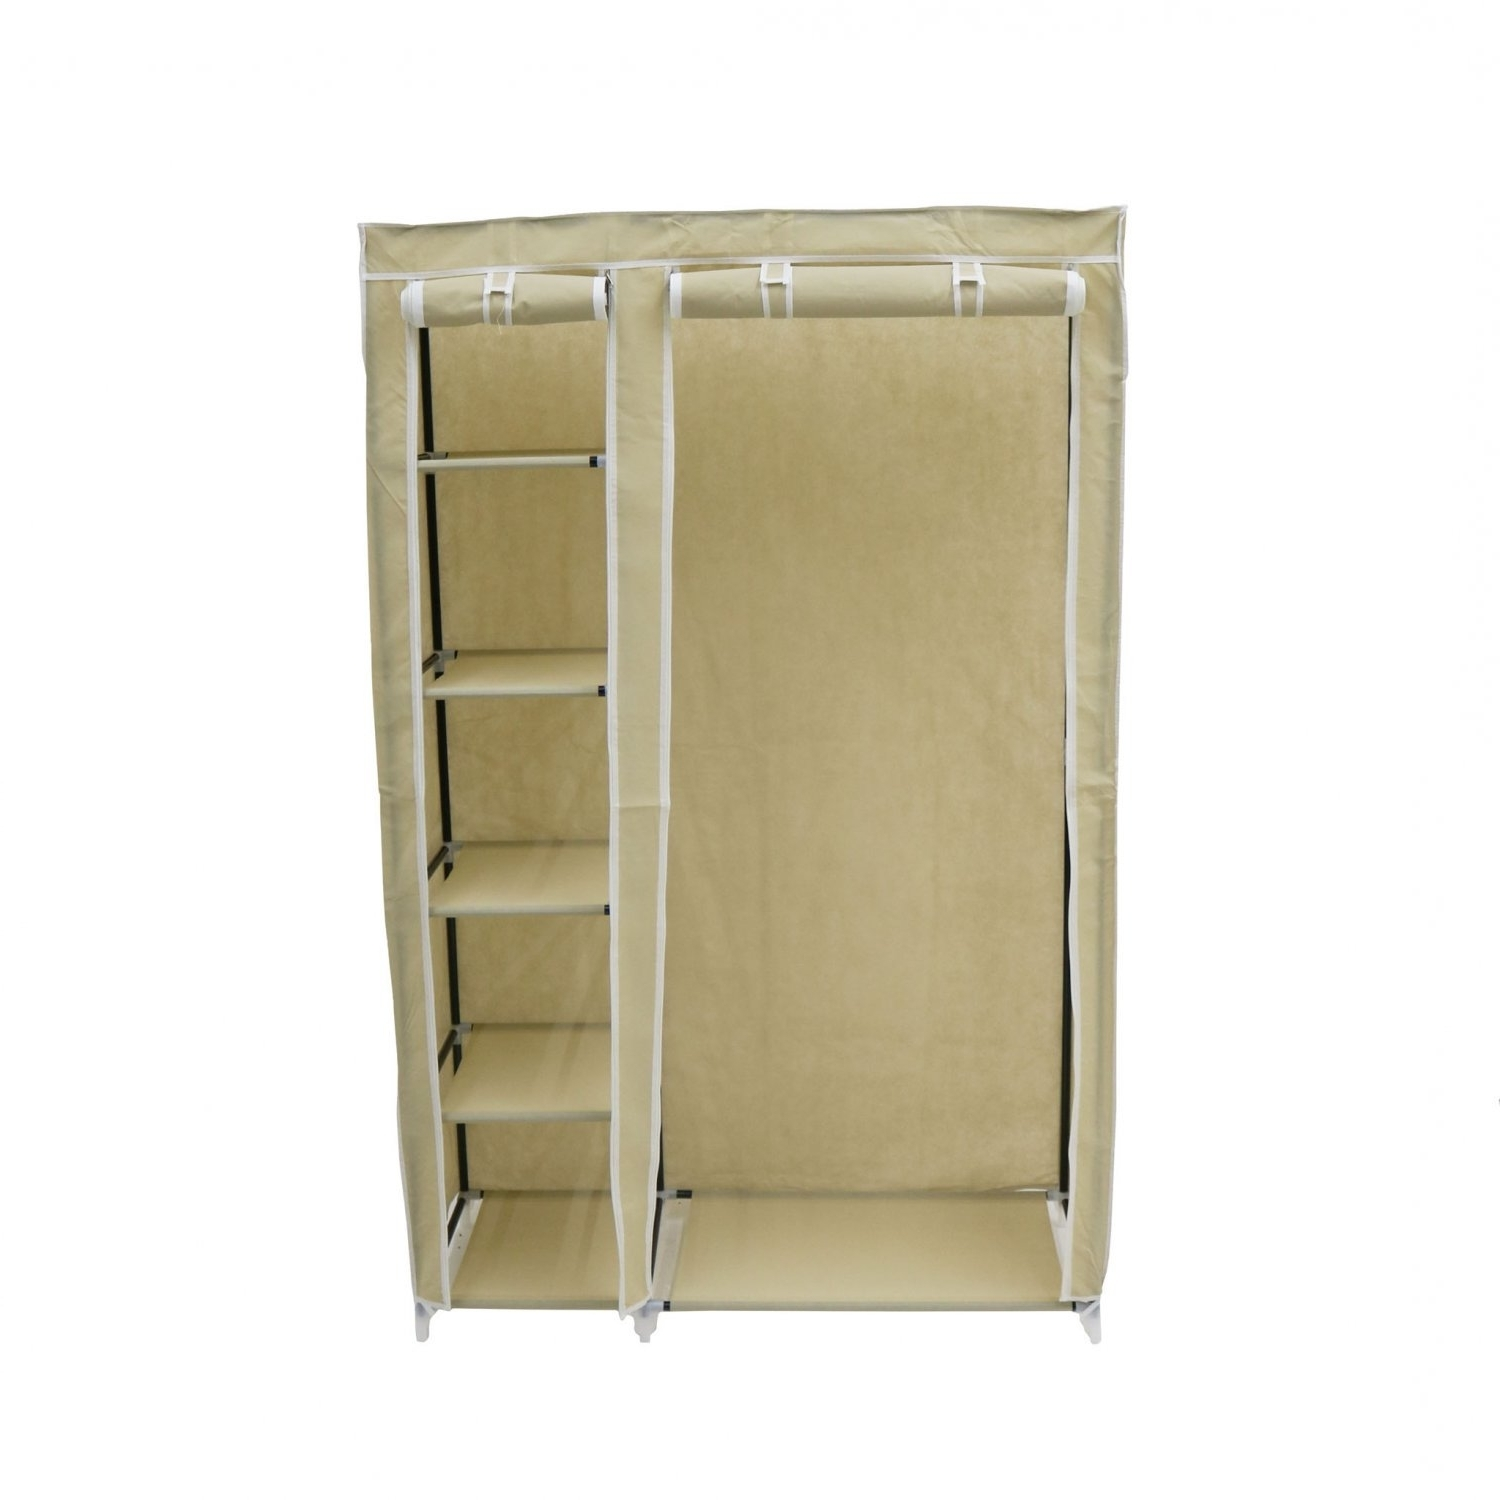 Double Canvas Wardrobes Rail Clothes Storage Regarding Latest Double Cream Canvas Wardrobe Clothes Rail Hanging Storage Closet (View 8 of 15)